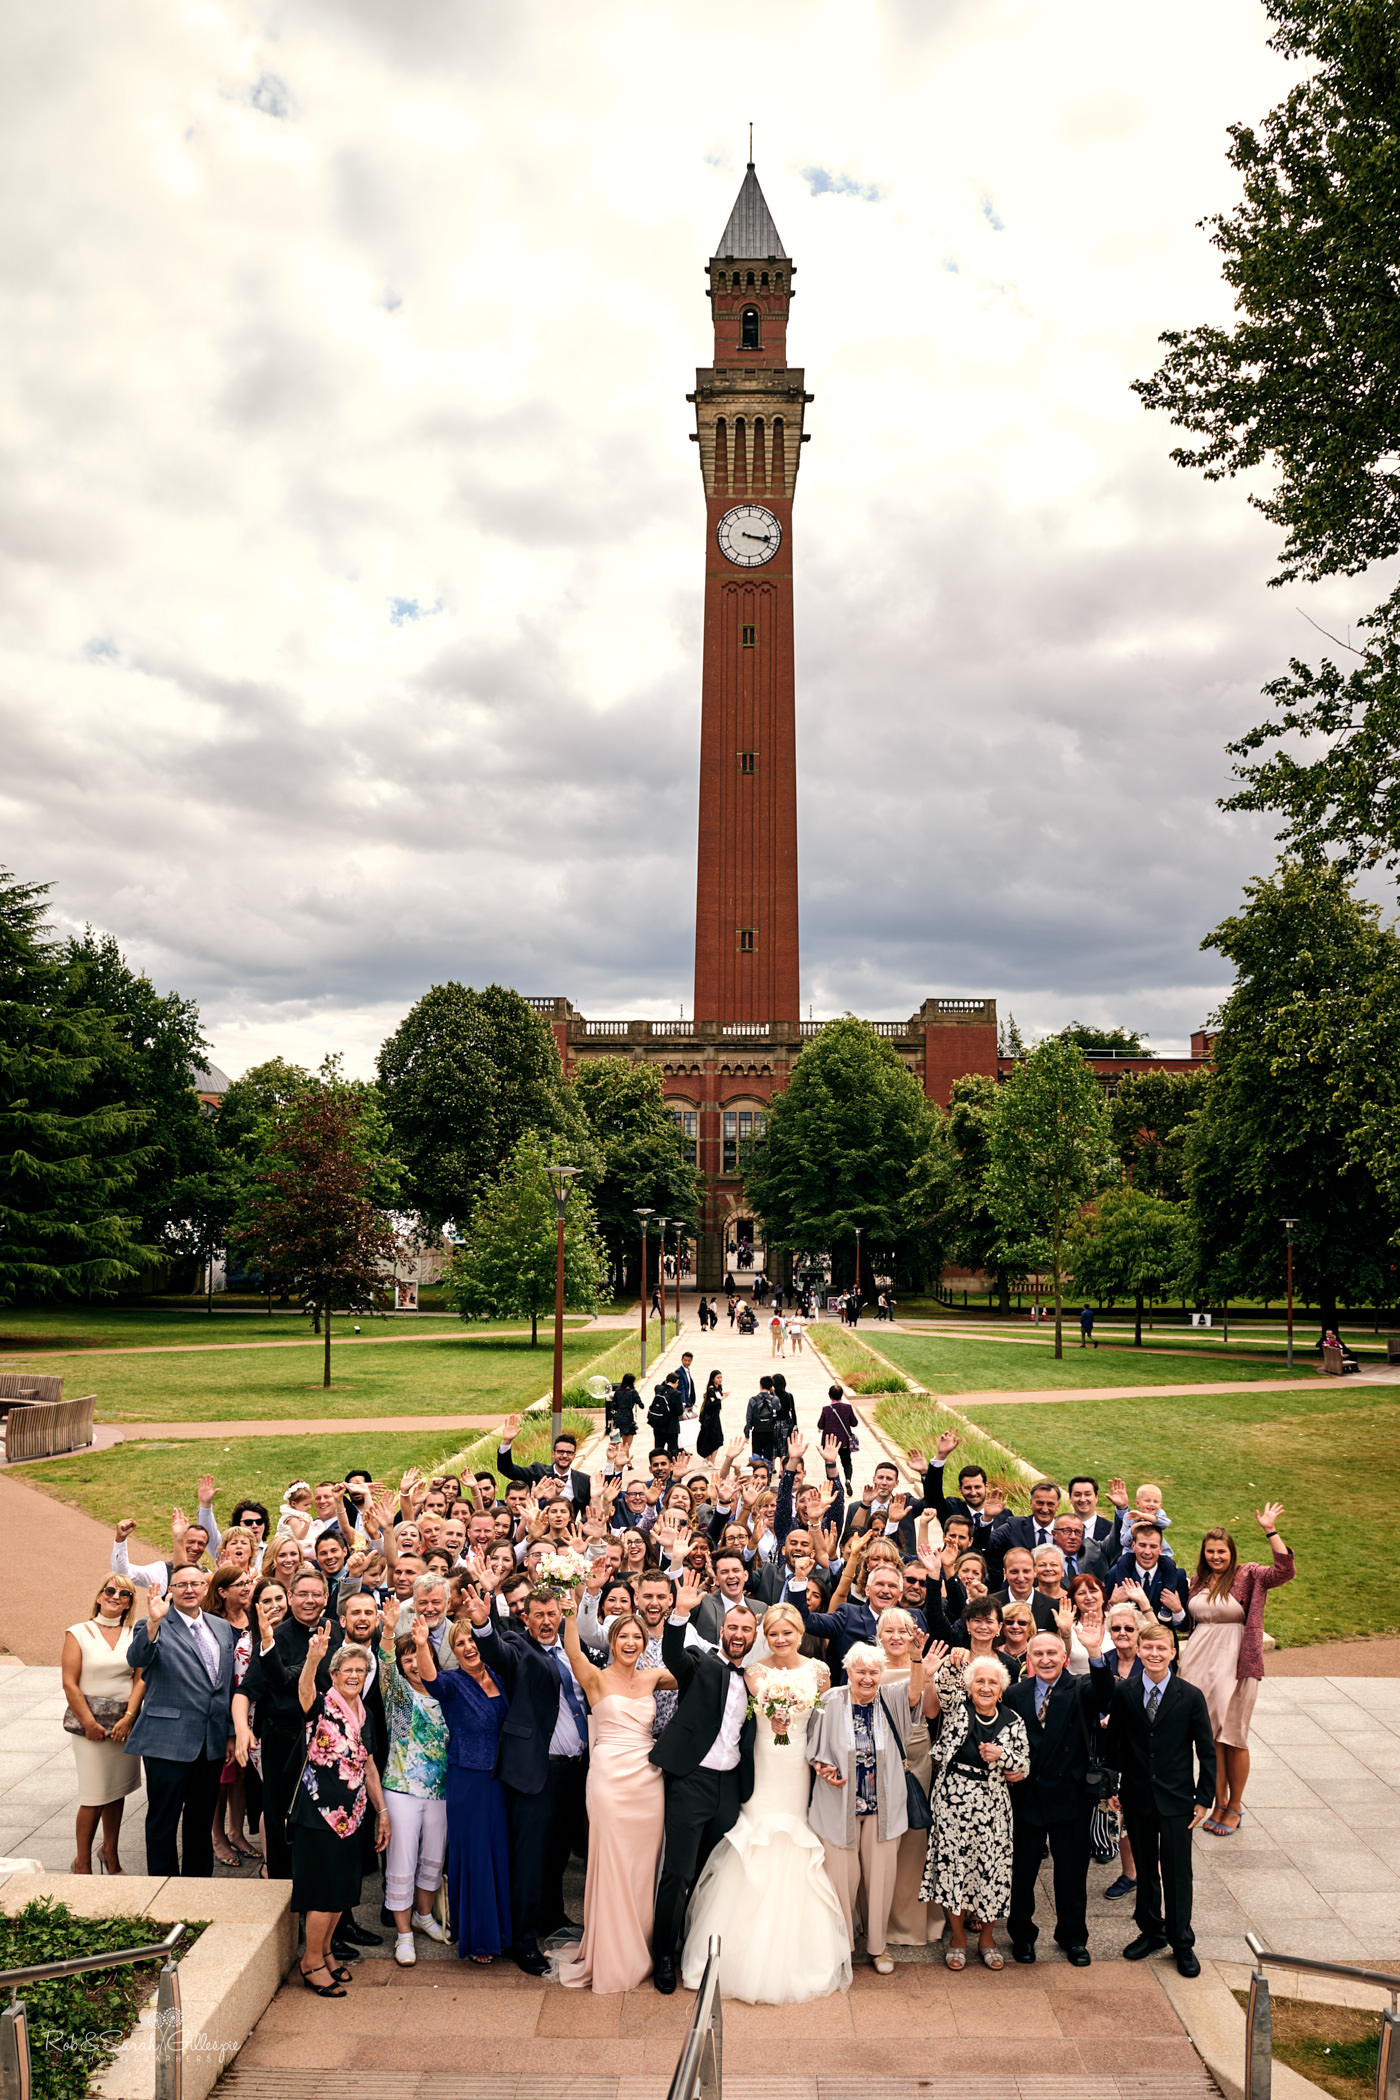 Wedding group photo at Birmingham University featuring Chamberlain clock tower in distance